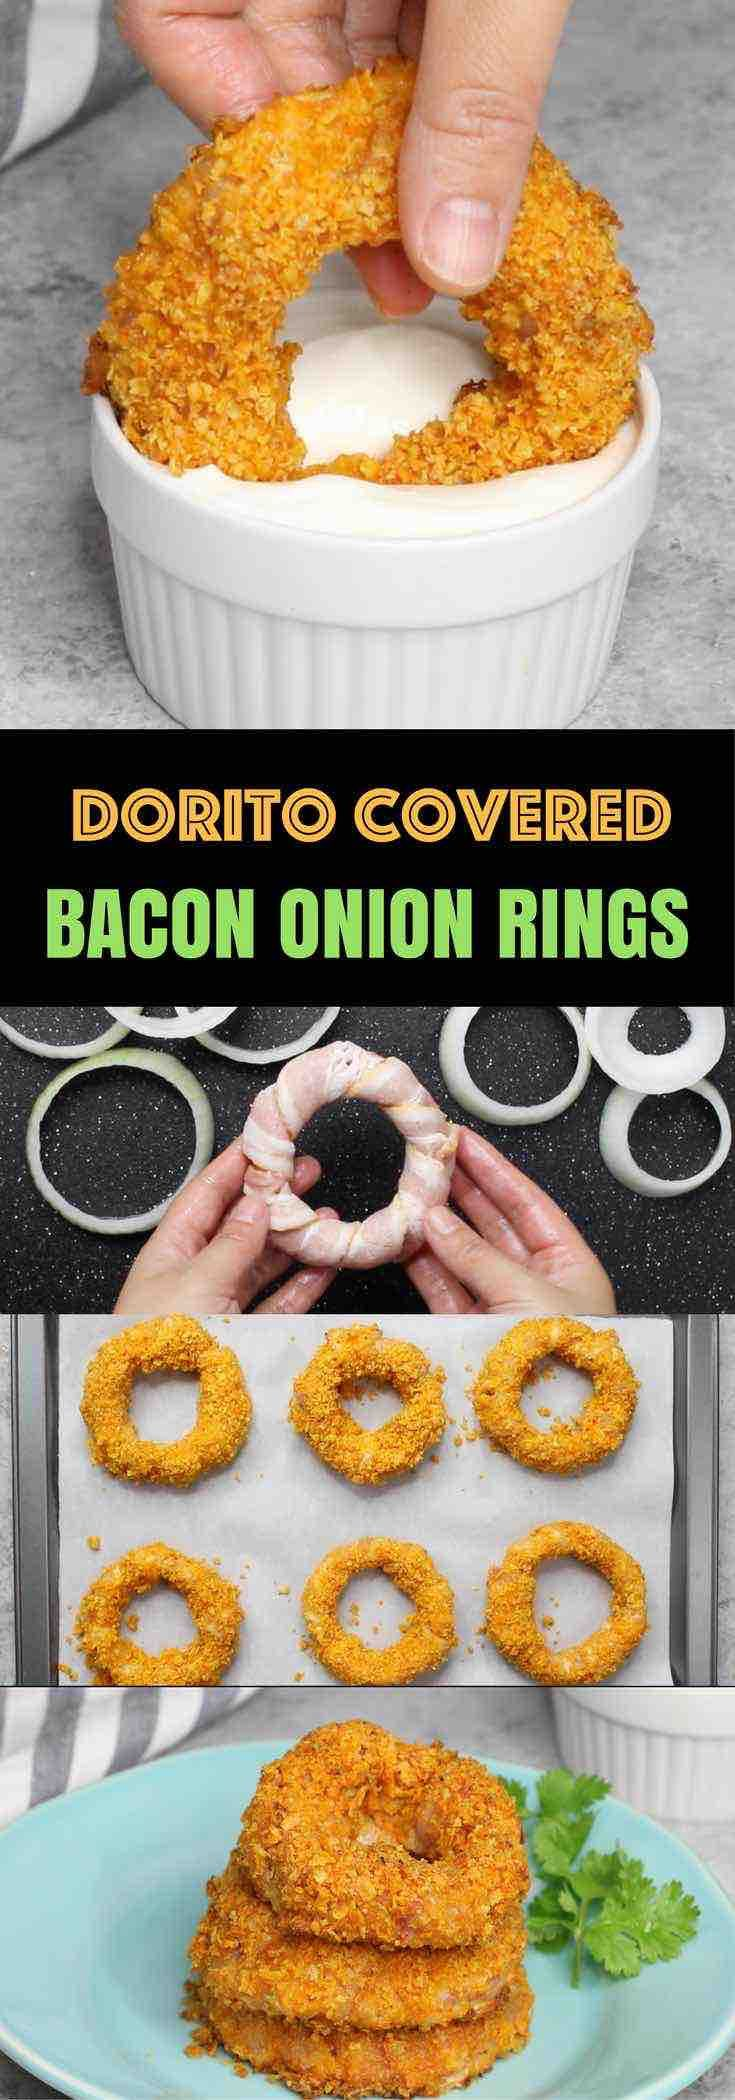 These Dorito Bacon Onion Rings are the ultimate crowd-pleasing snack - easy to make with just 4 ingredients.